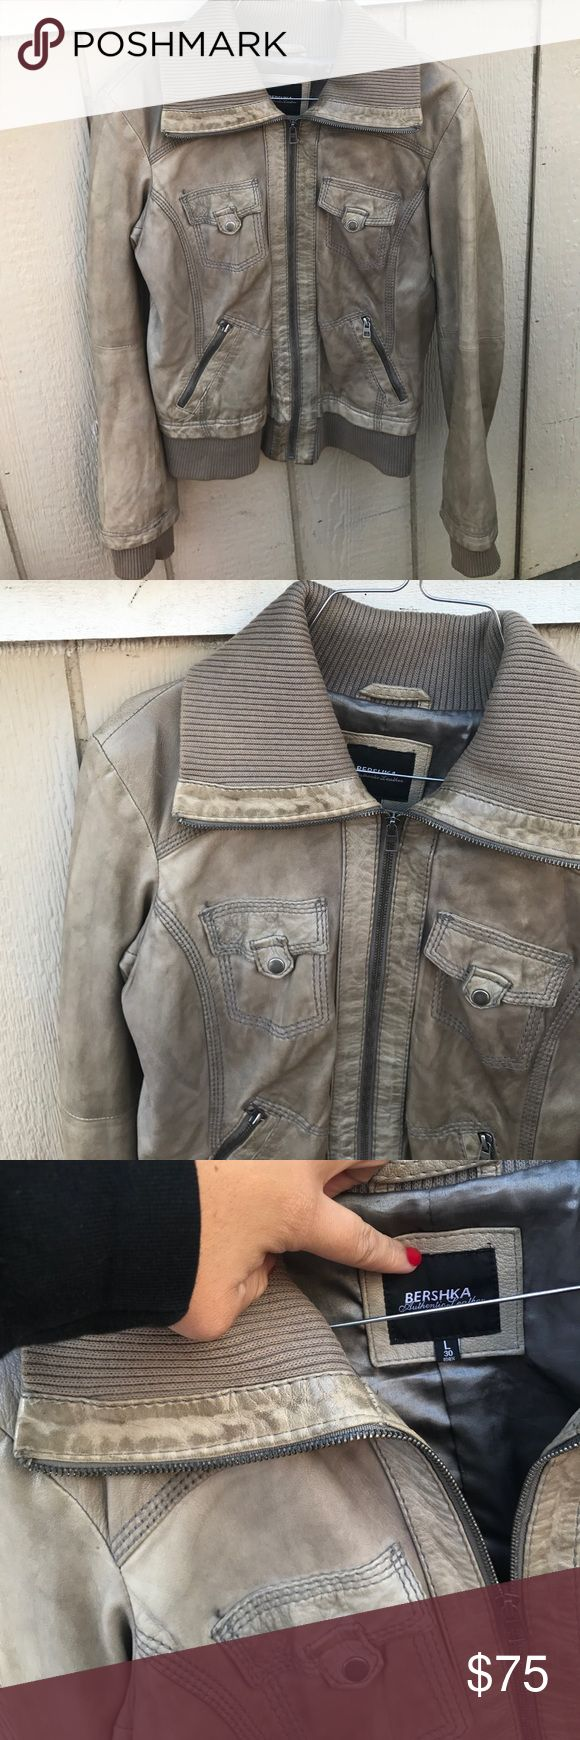 BERSHKA SZ L LEATHER JACKET TAUPE BEIGE ZIP UP Super cute and great condition Bershka Jackets & Coats